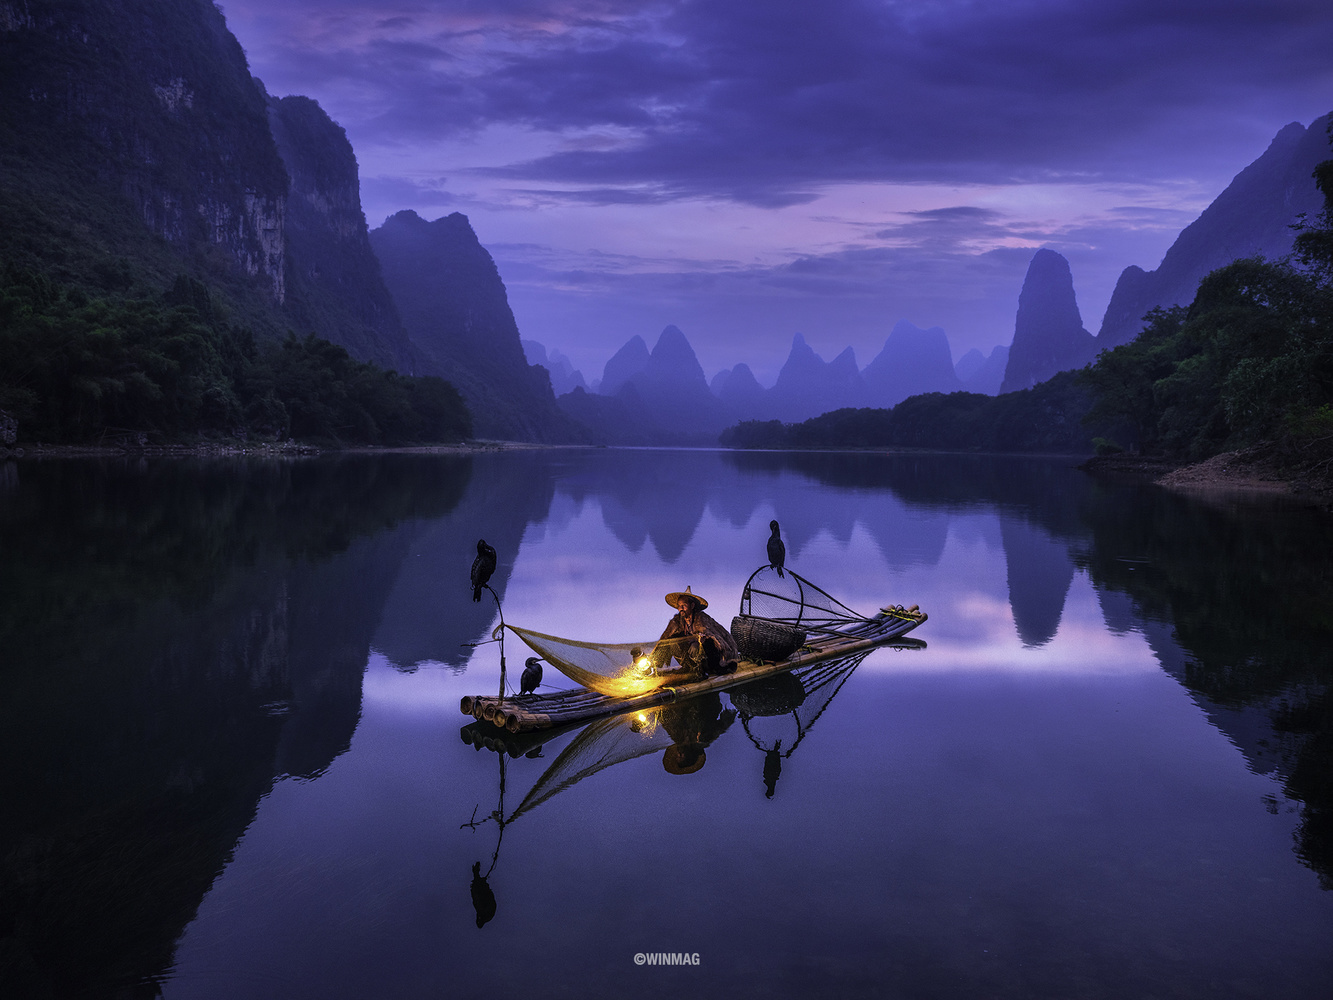 The Legend of Li River by Win Mag